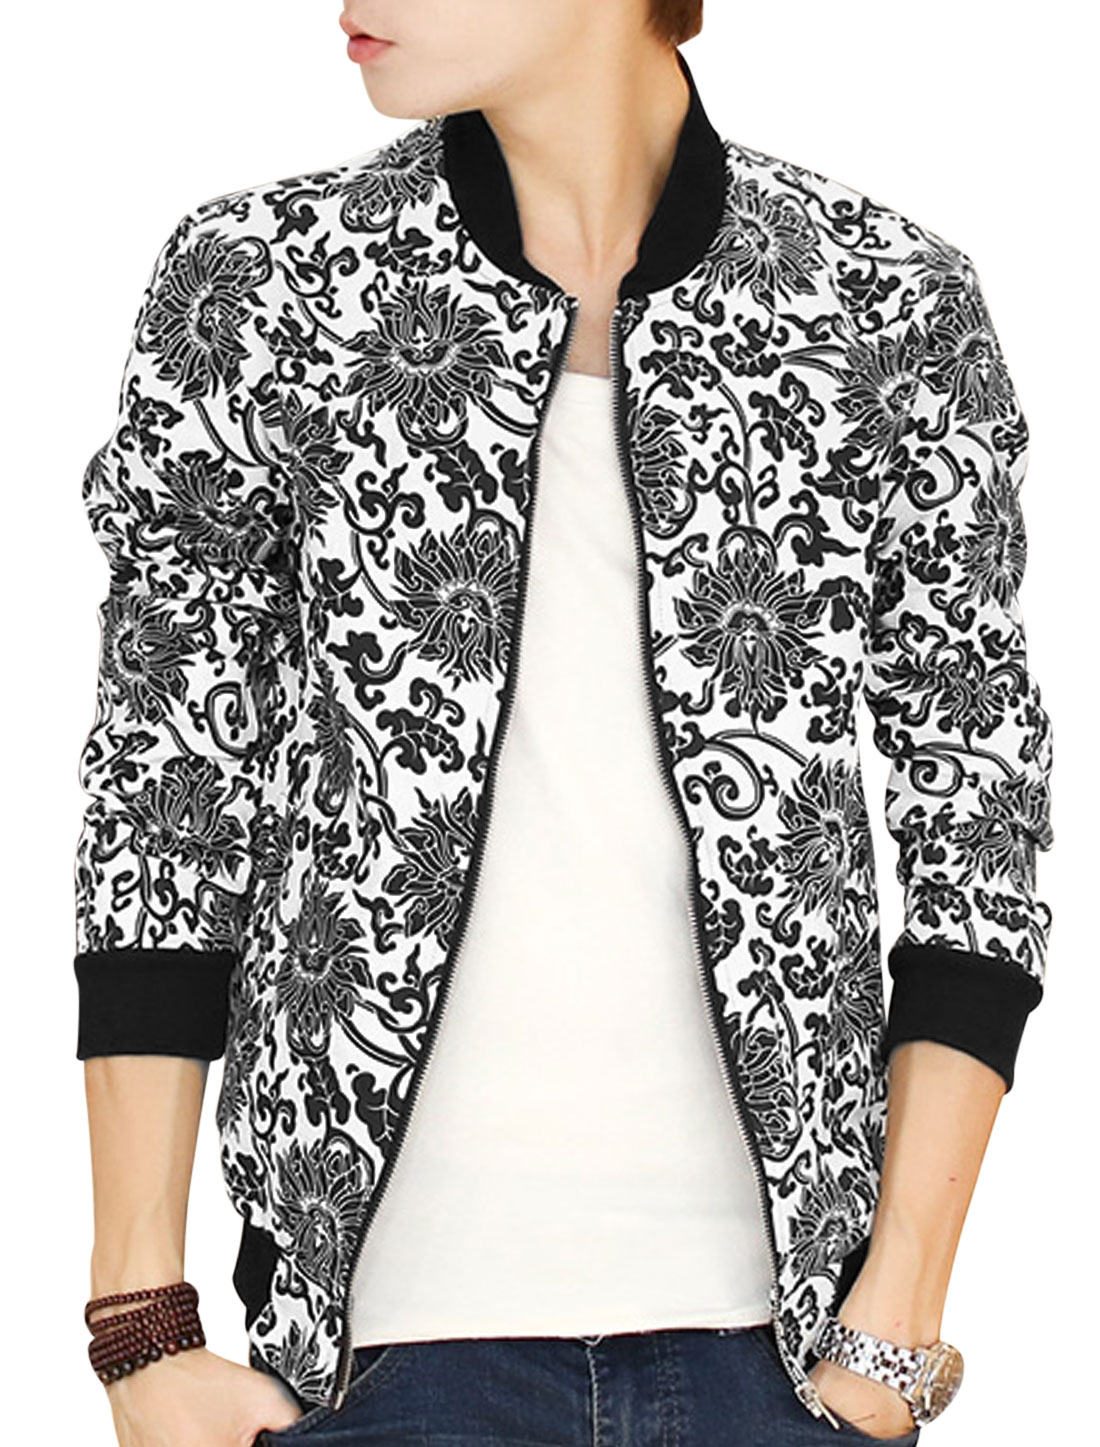 Men Stand Collar Zip Up Floral Pattern Fashion Casual Jacket White Black S